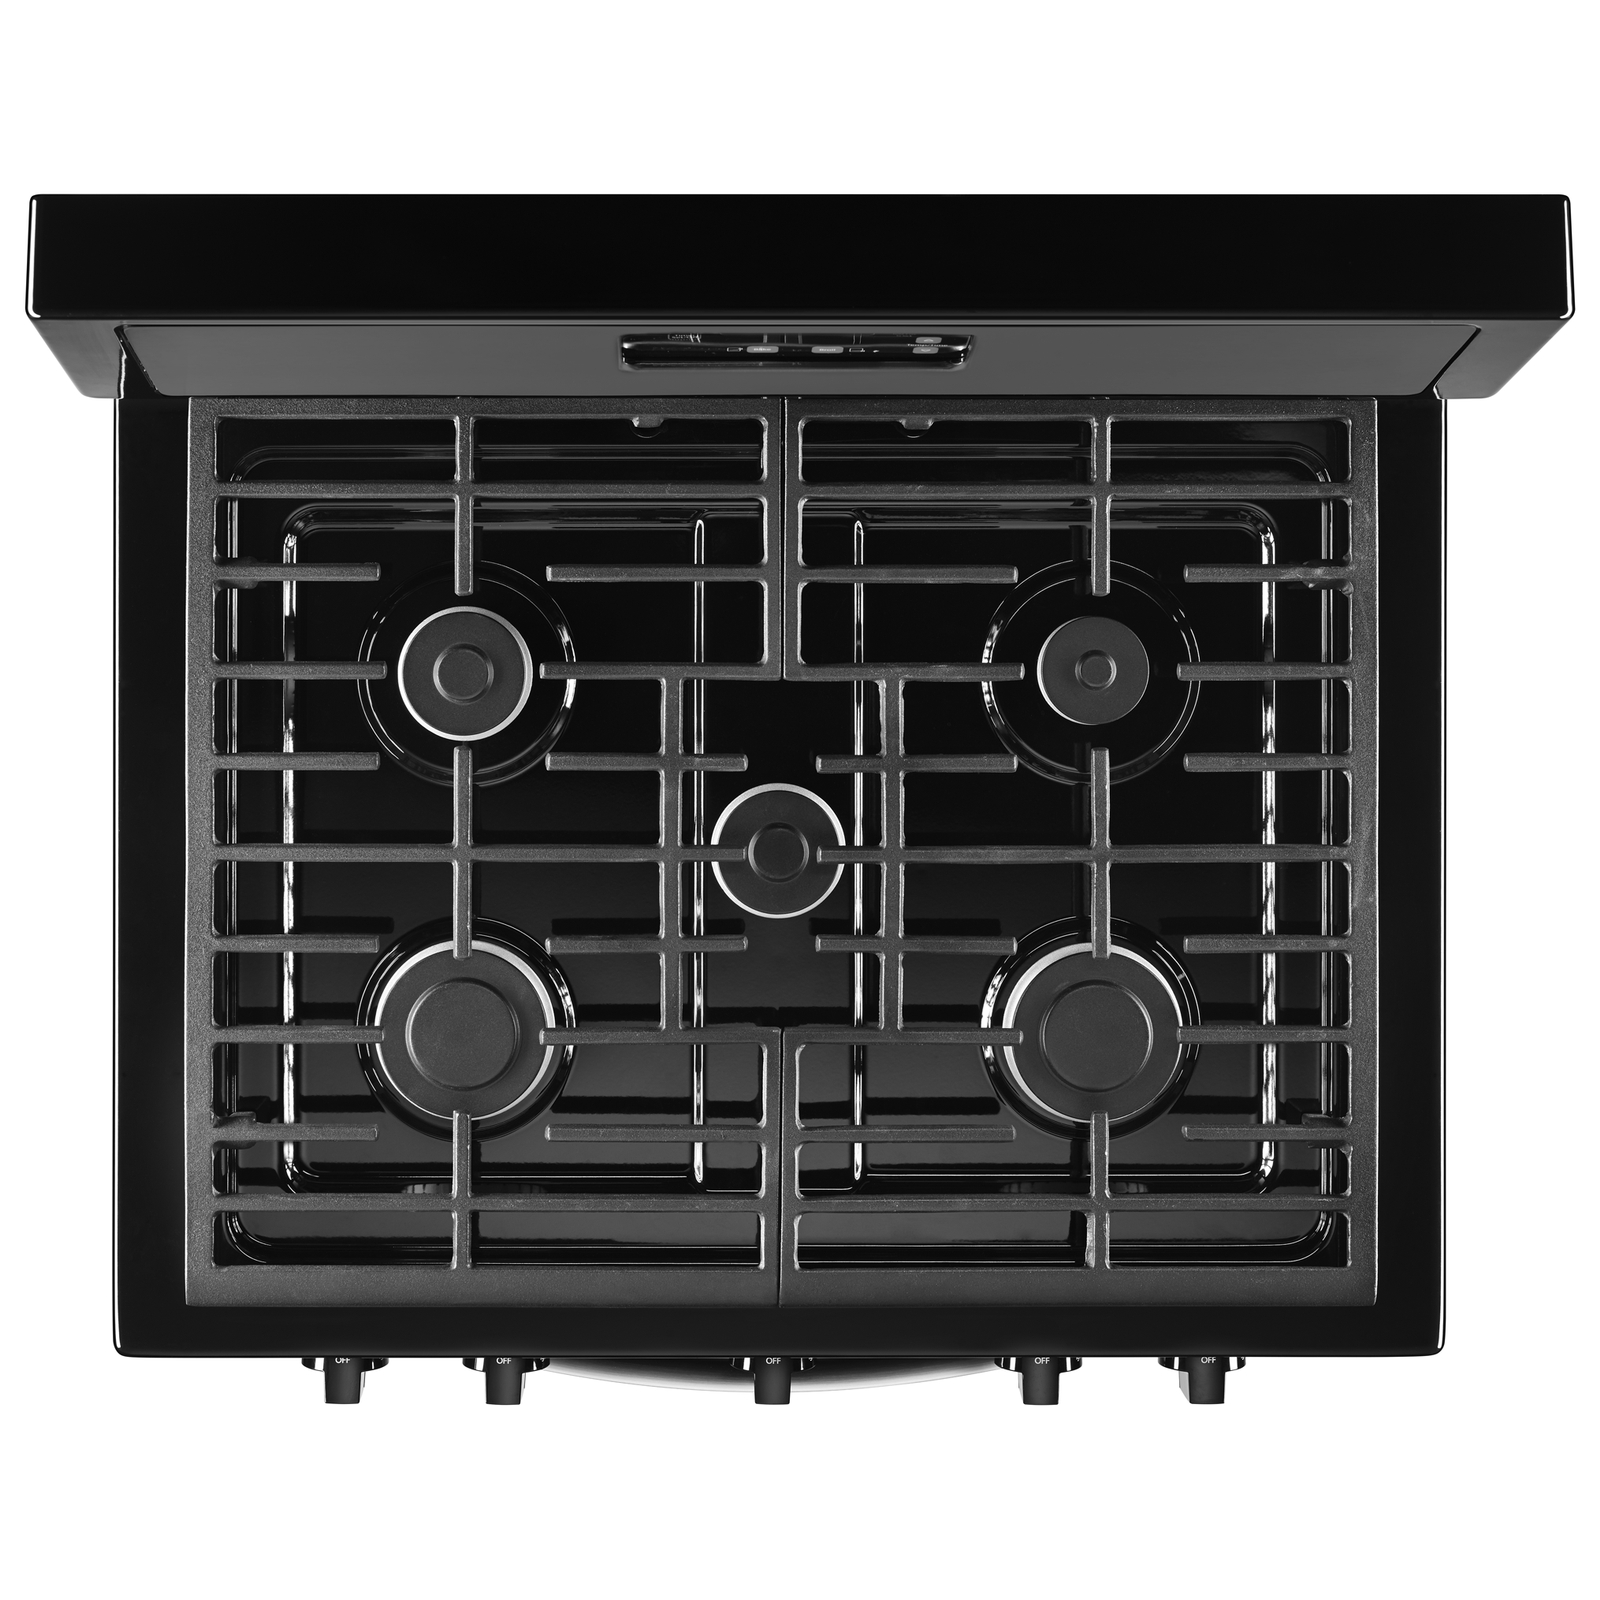 Whirlpool WFG505M0BB 5.1 cu. ft. Gas Range w/ Griddle - Black